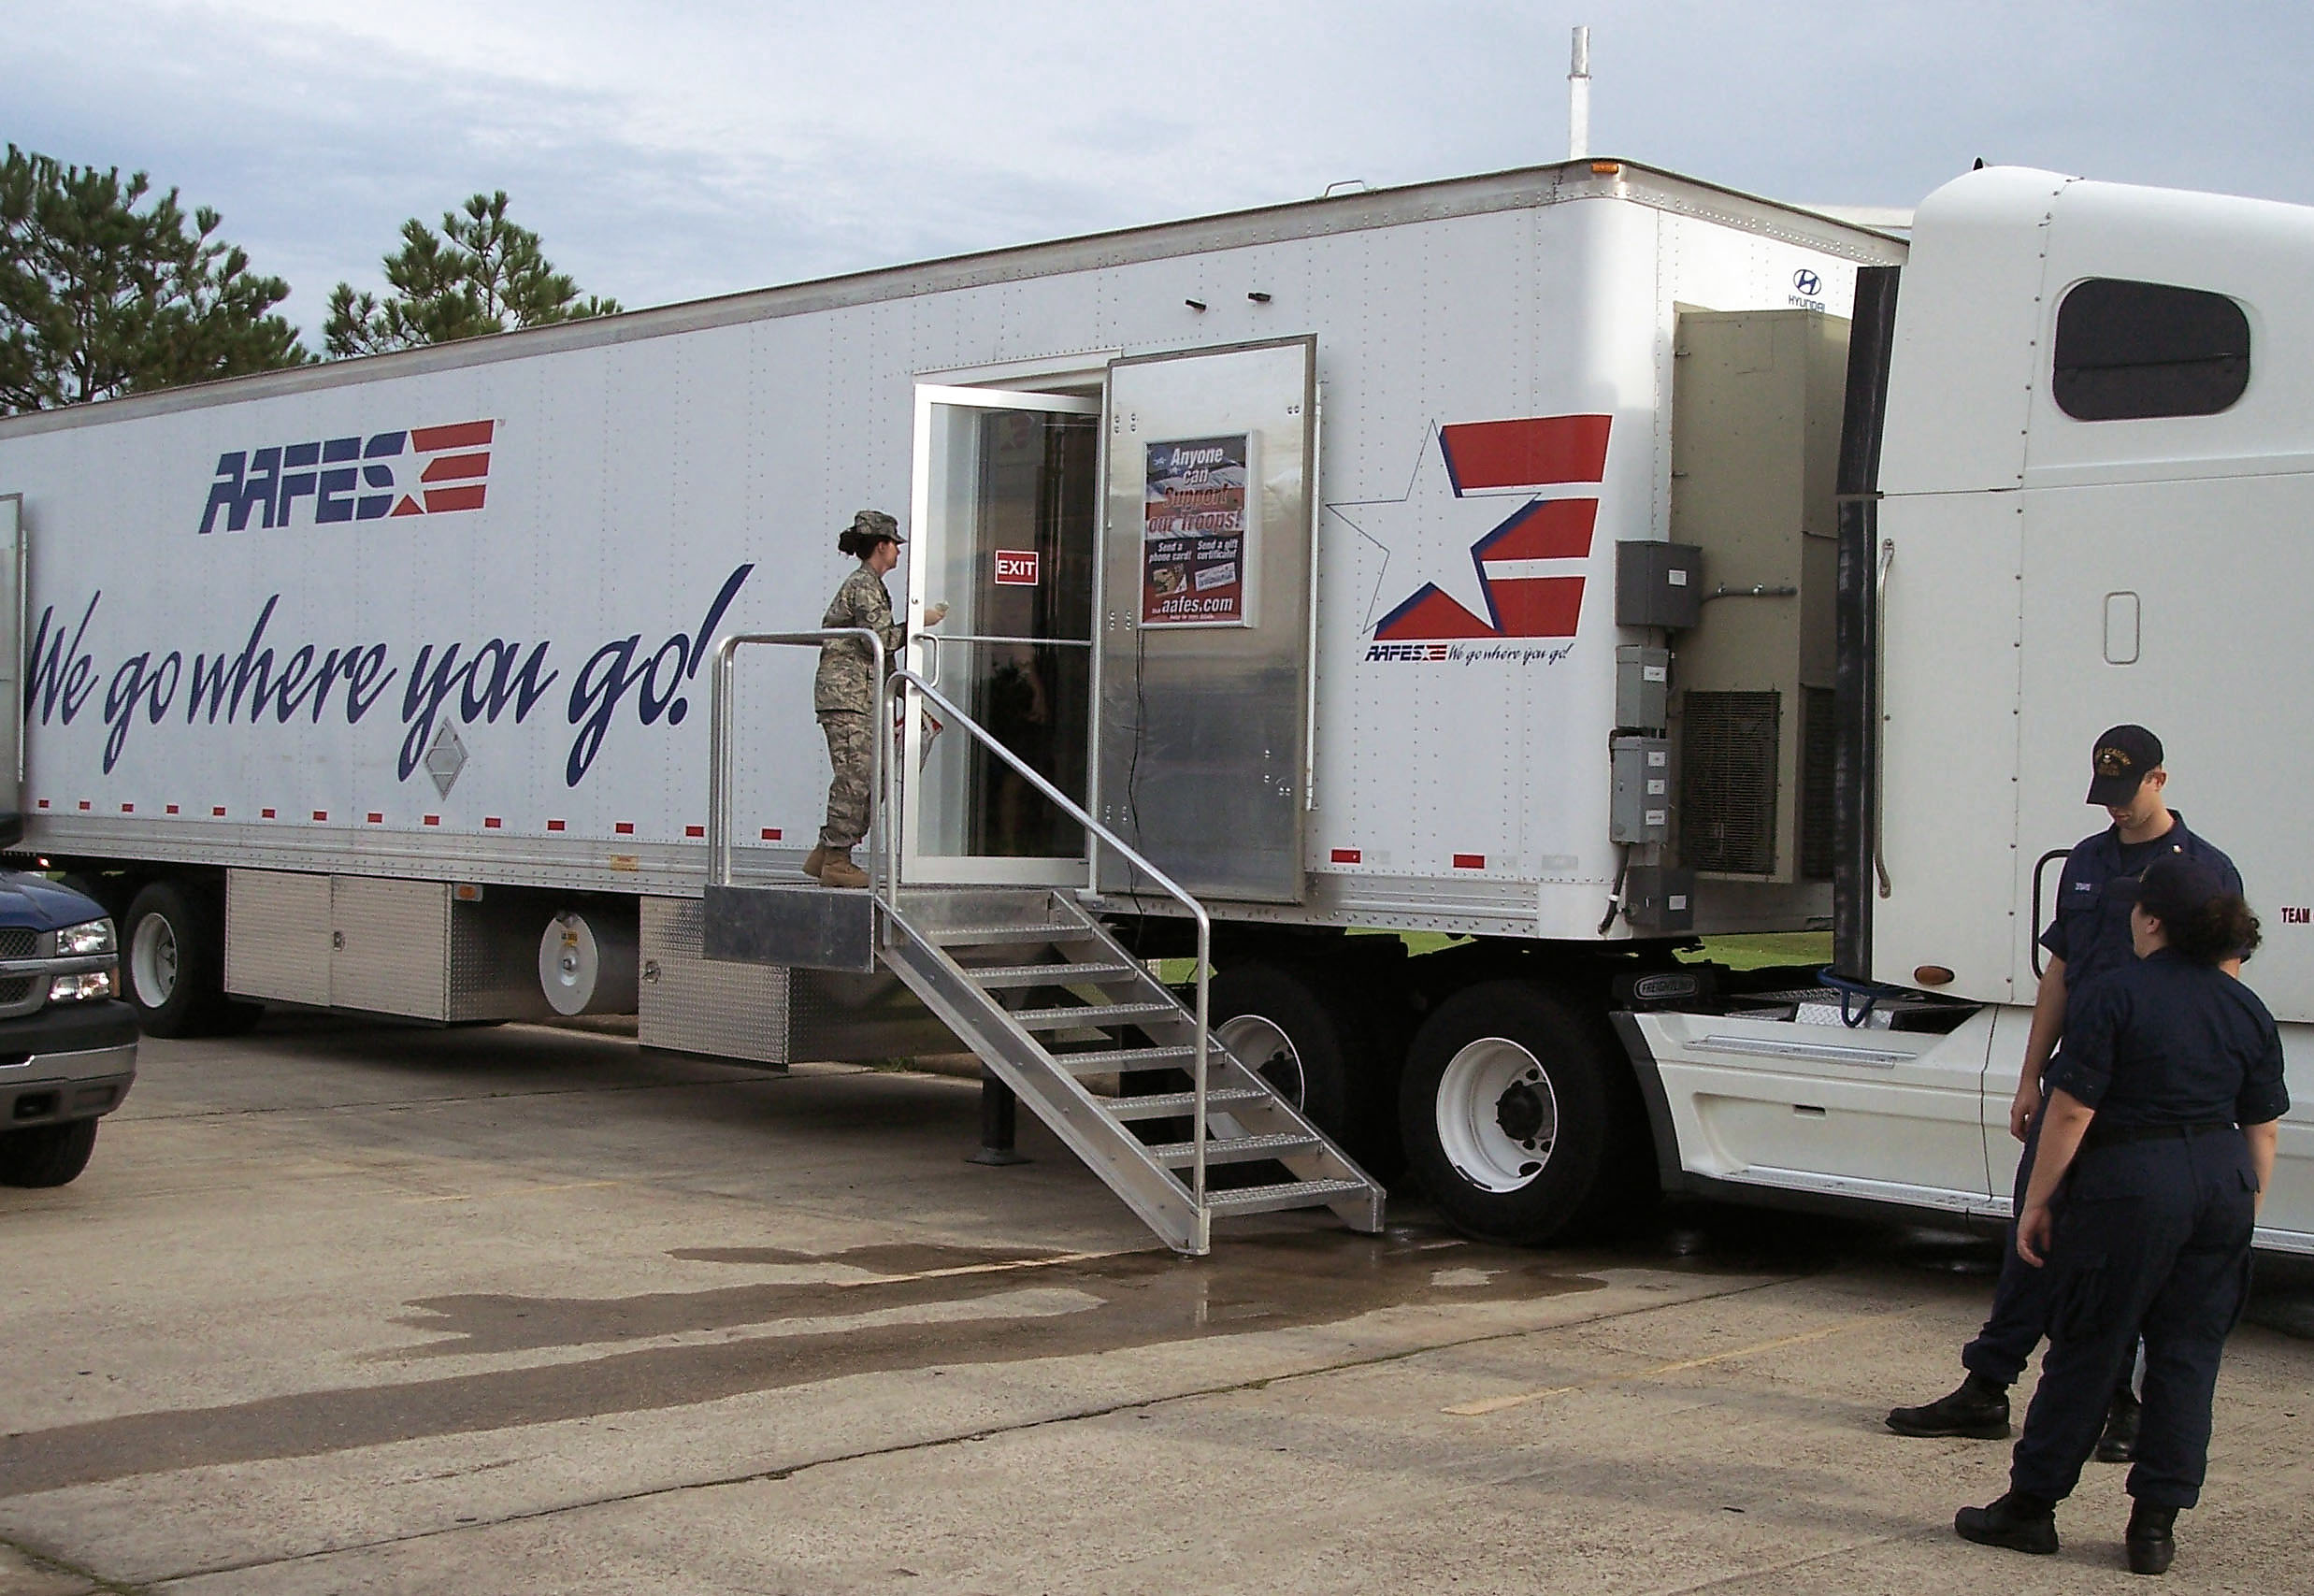 AAFES supports troops bringing relief to Ike victims > U S